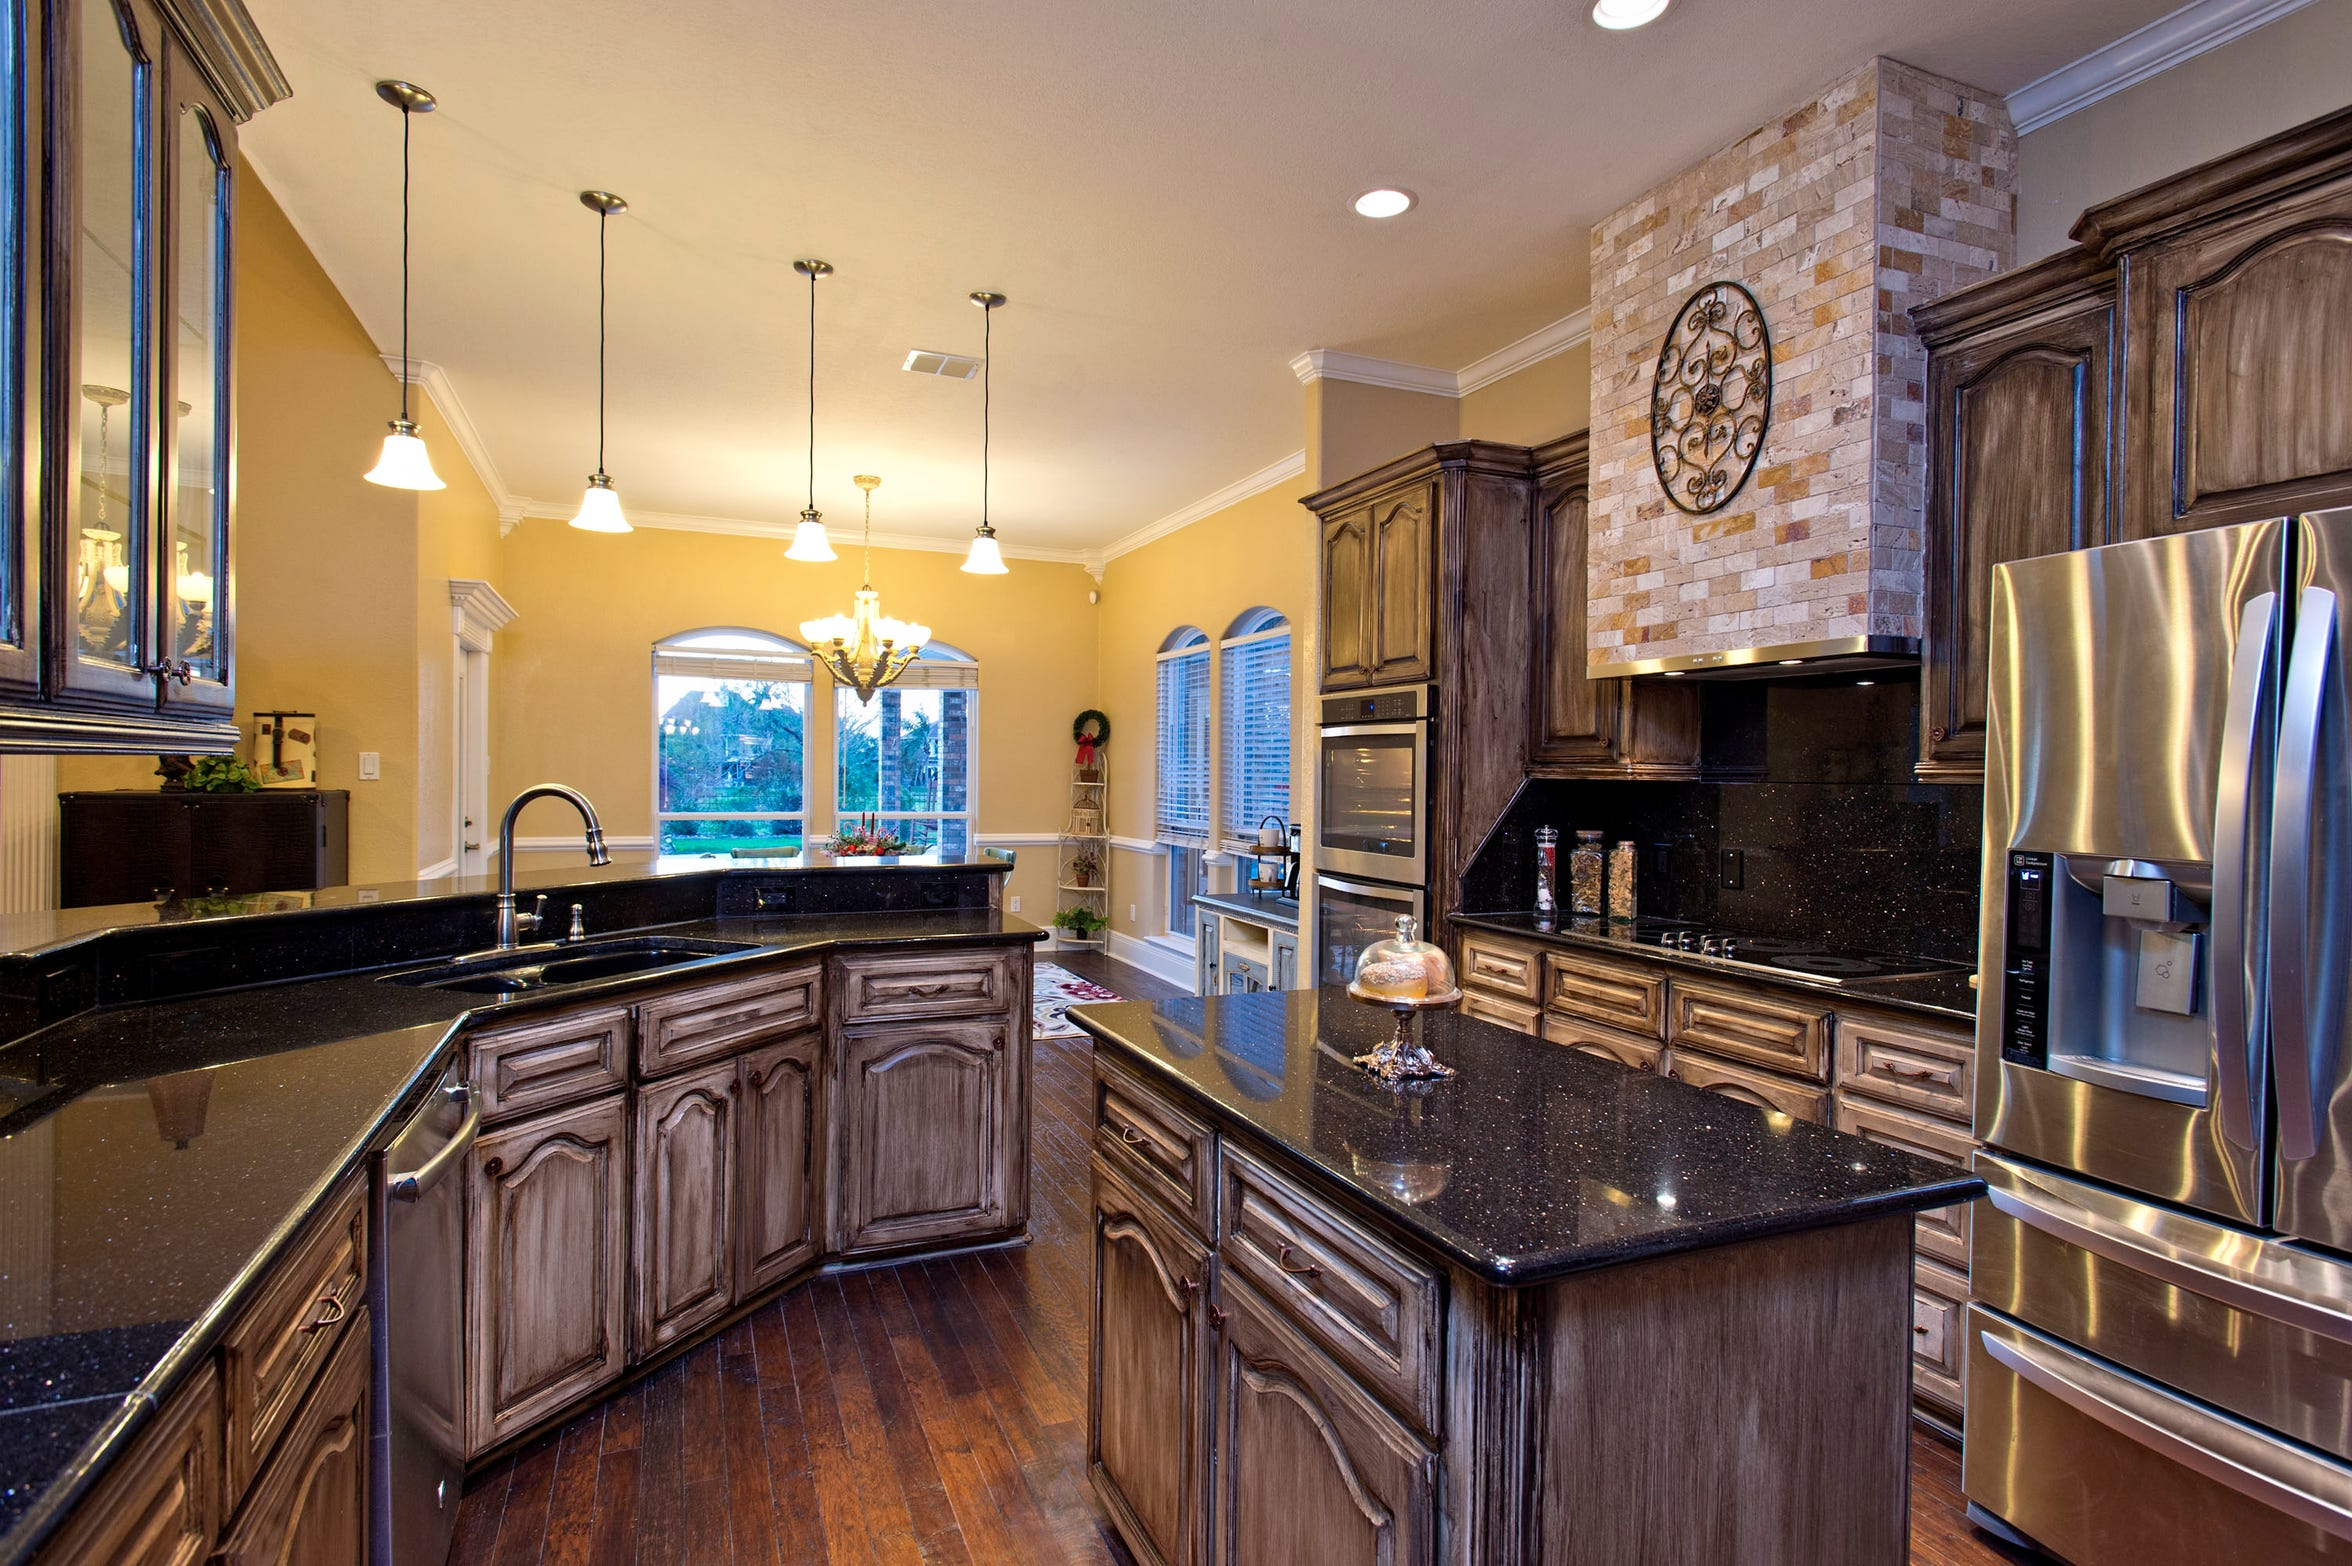 The kitchen along with the rest of the home has been remodeled with custom finished cabinetry,  hardwood flooring and top of the line stainless appliances.